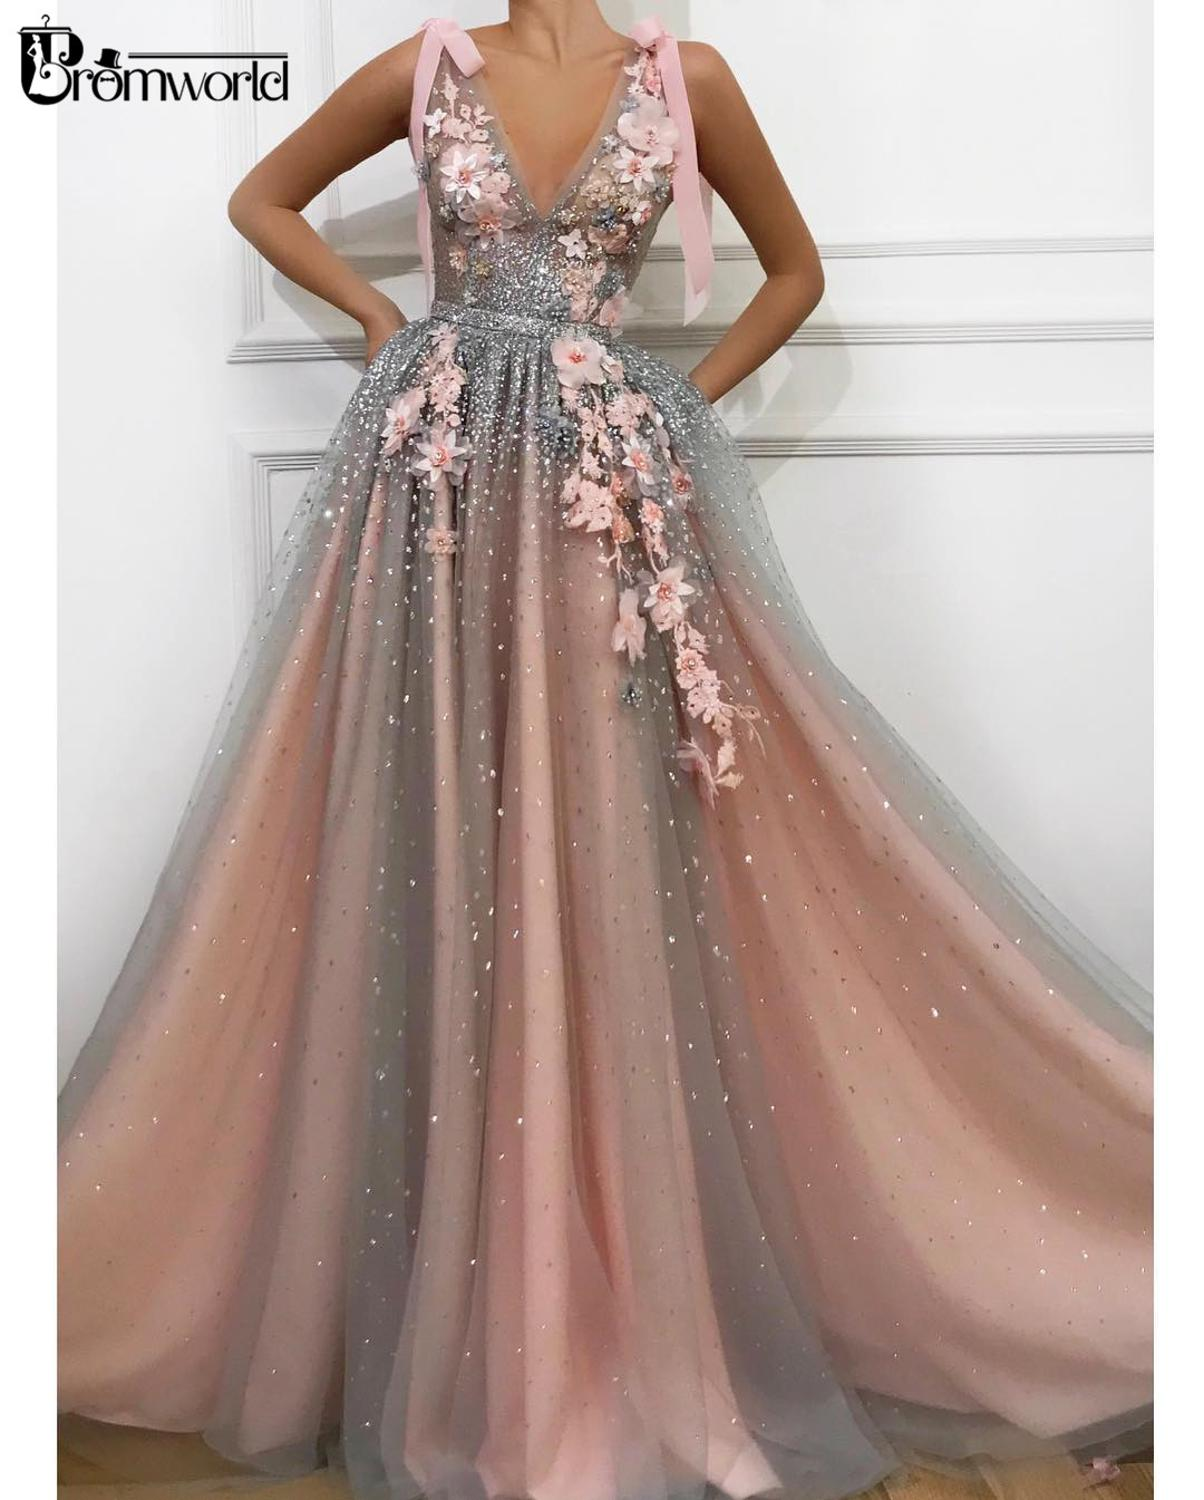 Pink Crystals Prom Dresses 2020 V-Neck Tulle Lace Flowers Beaded Vestidos De Gala Long Prom Gown Evening Party Robe De Soiree